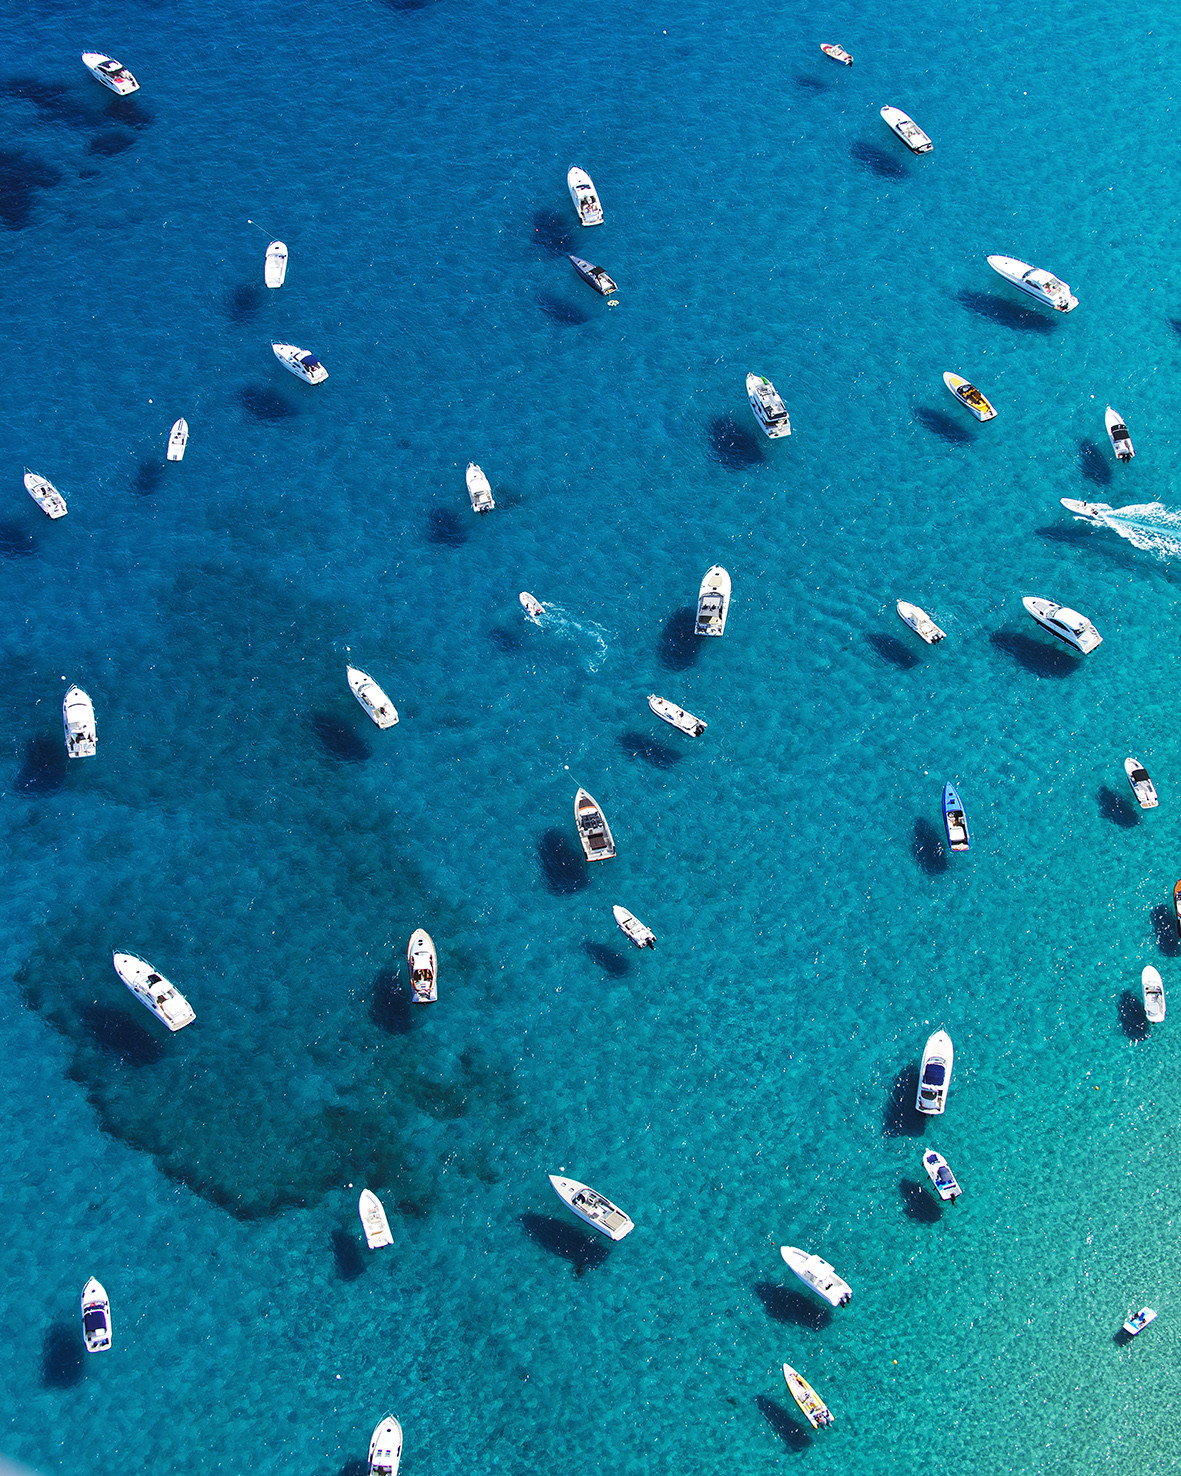 The clear waters of St. Tropez